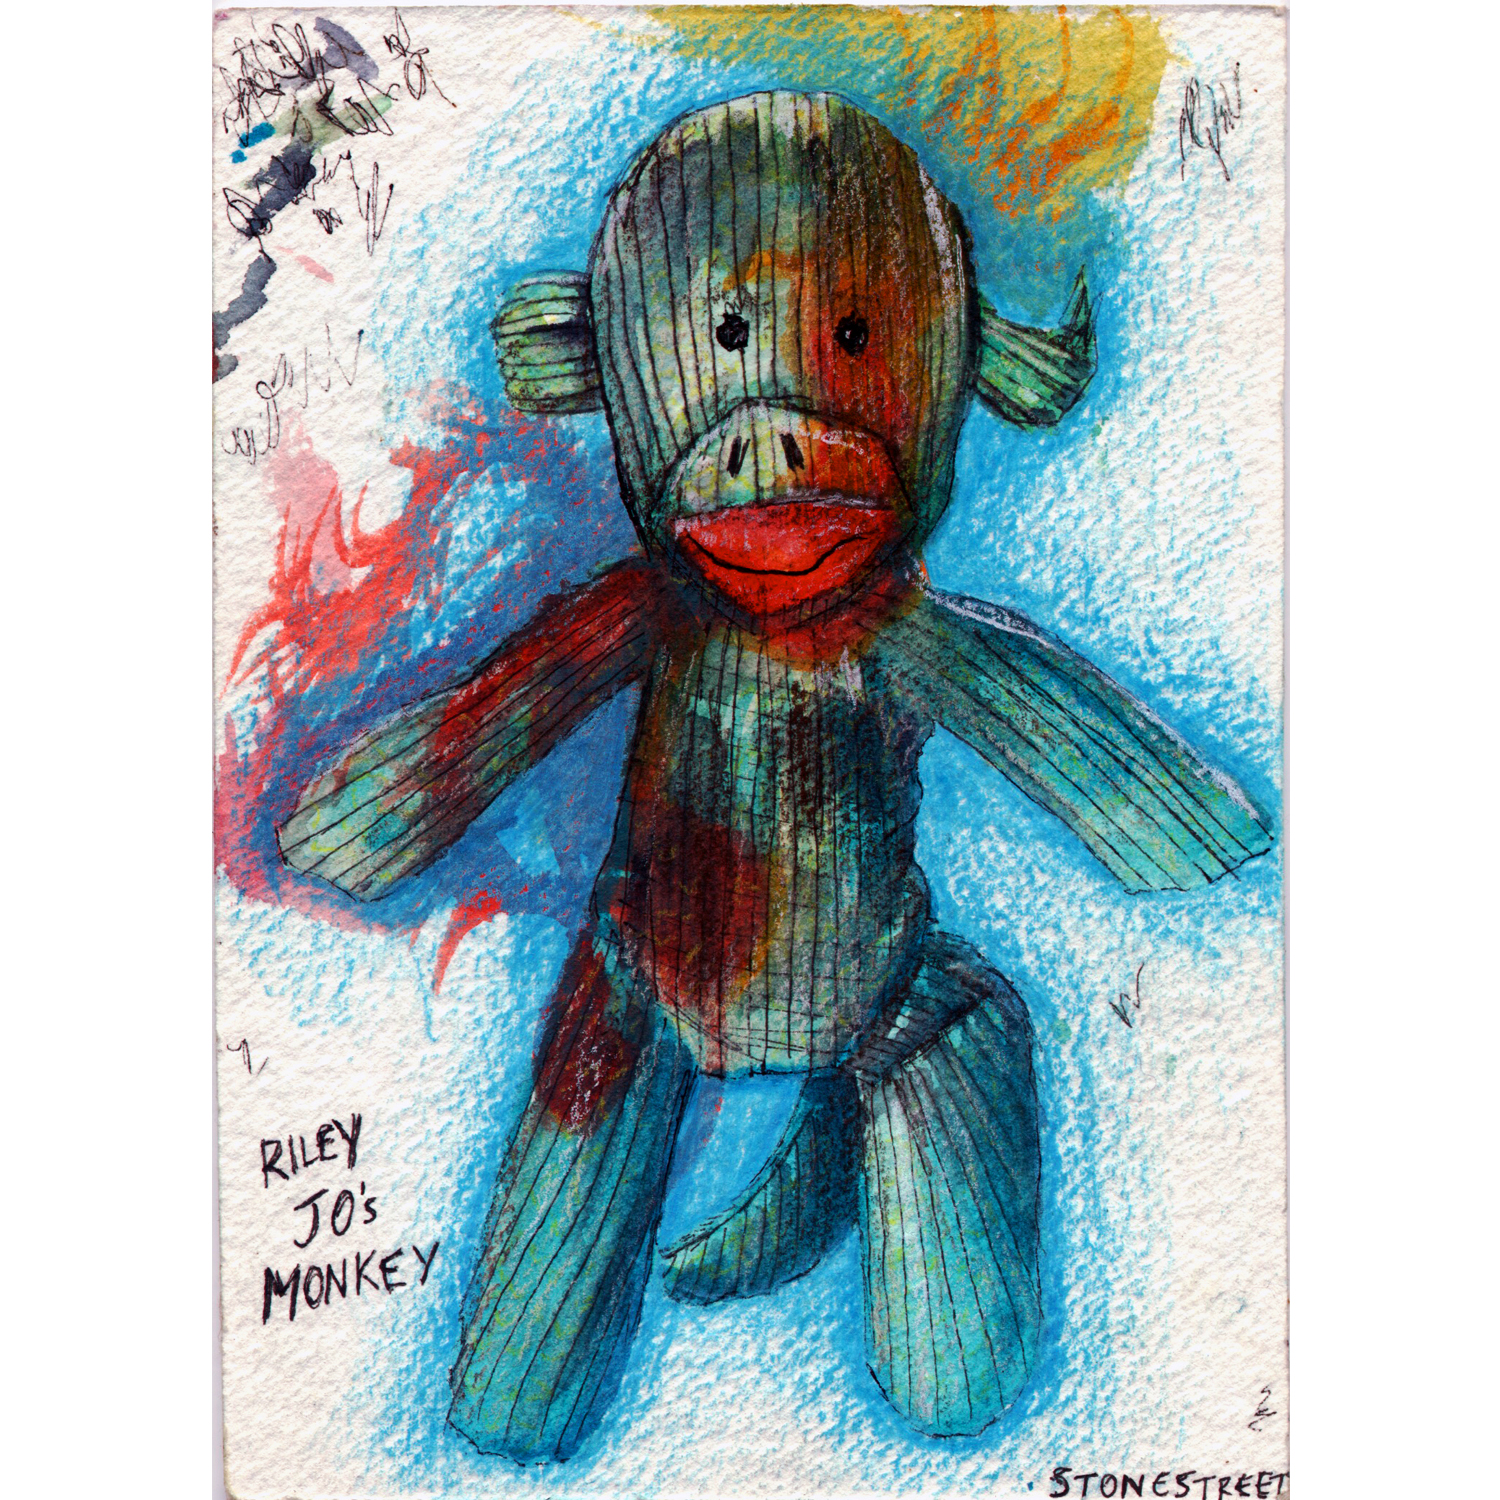 Riley Jo's Monkey Toy - squarespace.jpg